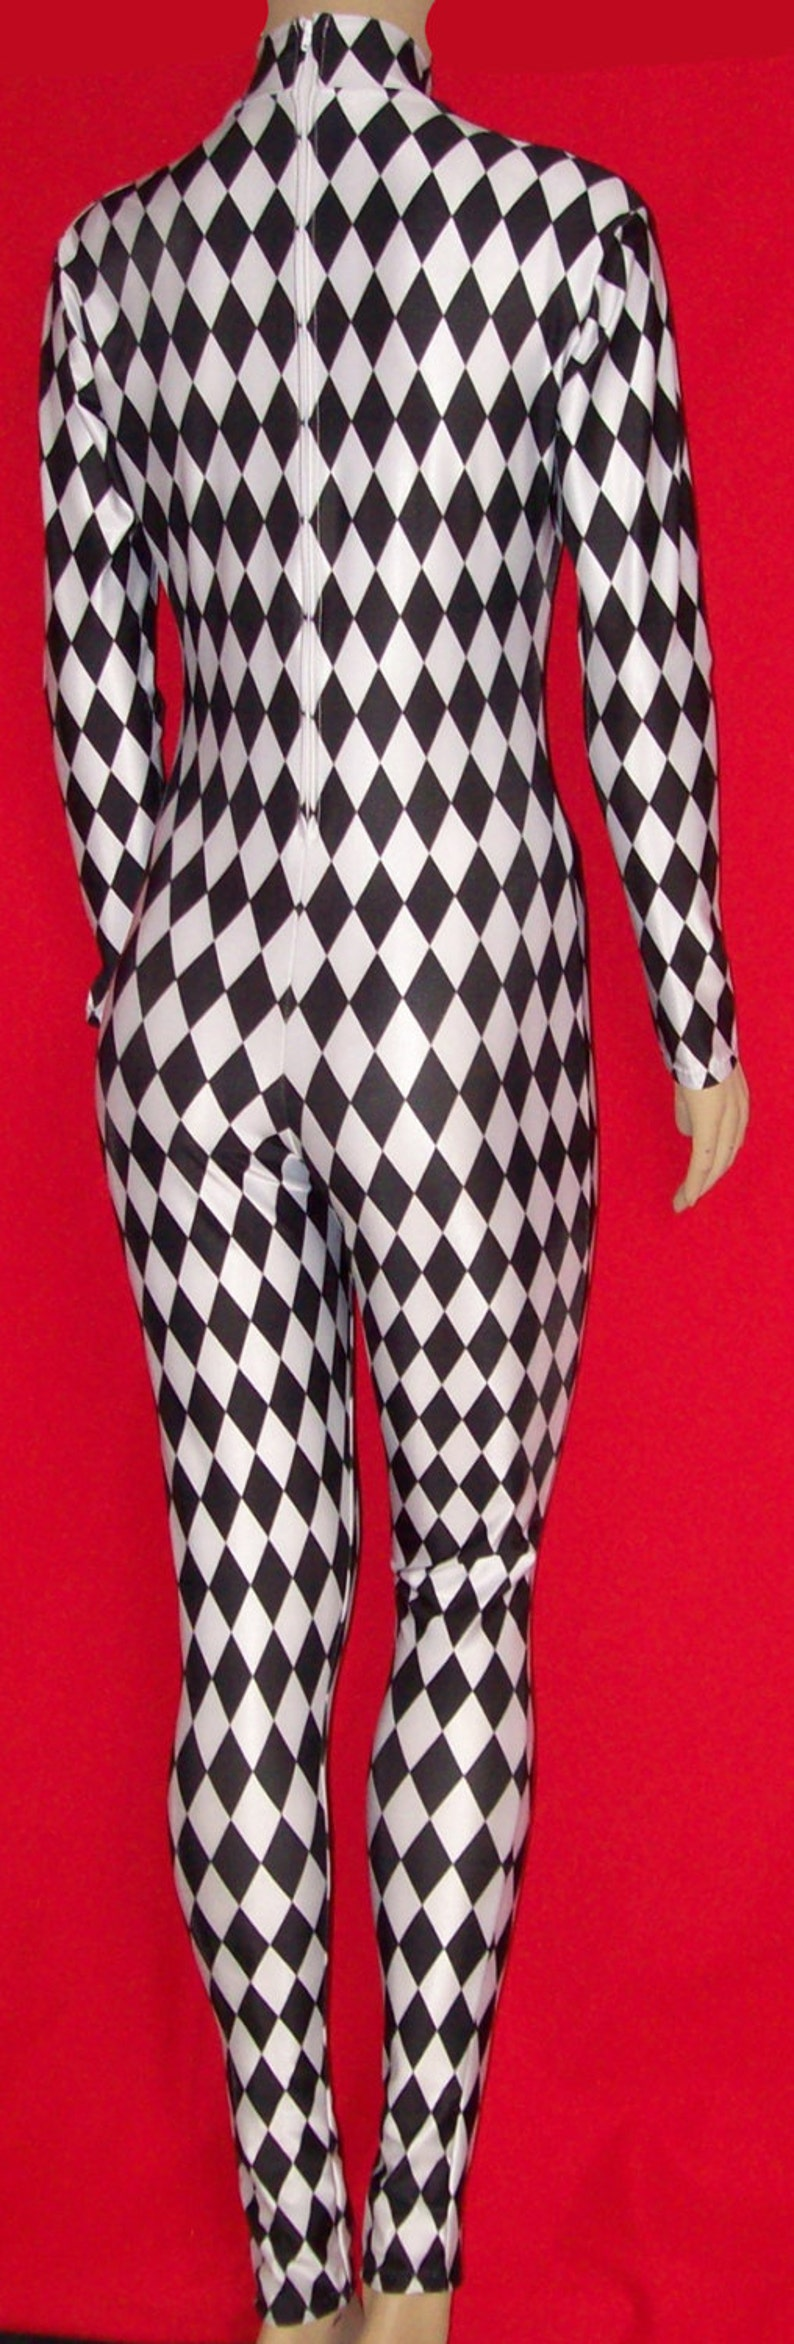 6987735712d1 Harlequin Diamonds Stretch Spandex Unitard Catsuit Bodysuit